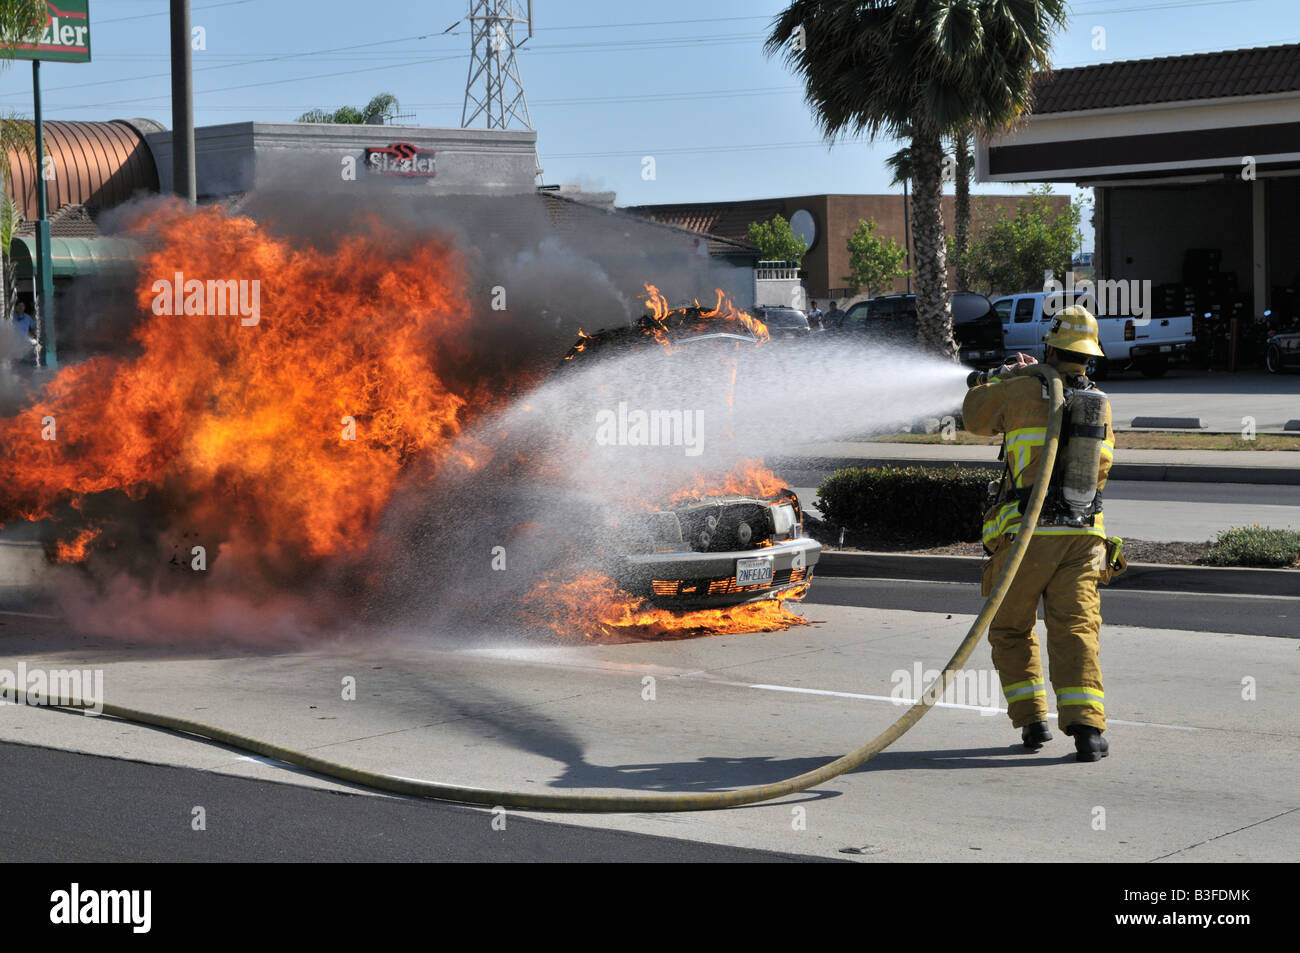 Lovely Exceptionnel Firefighter Putting Out Fire On Burning Mercedes Stock Image